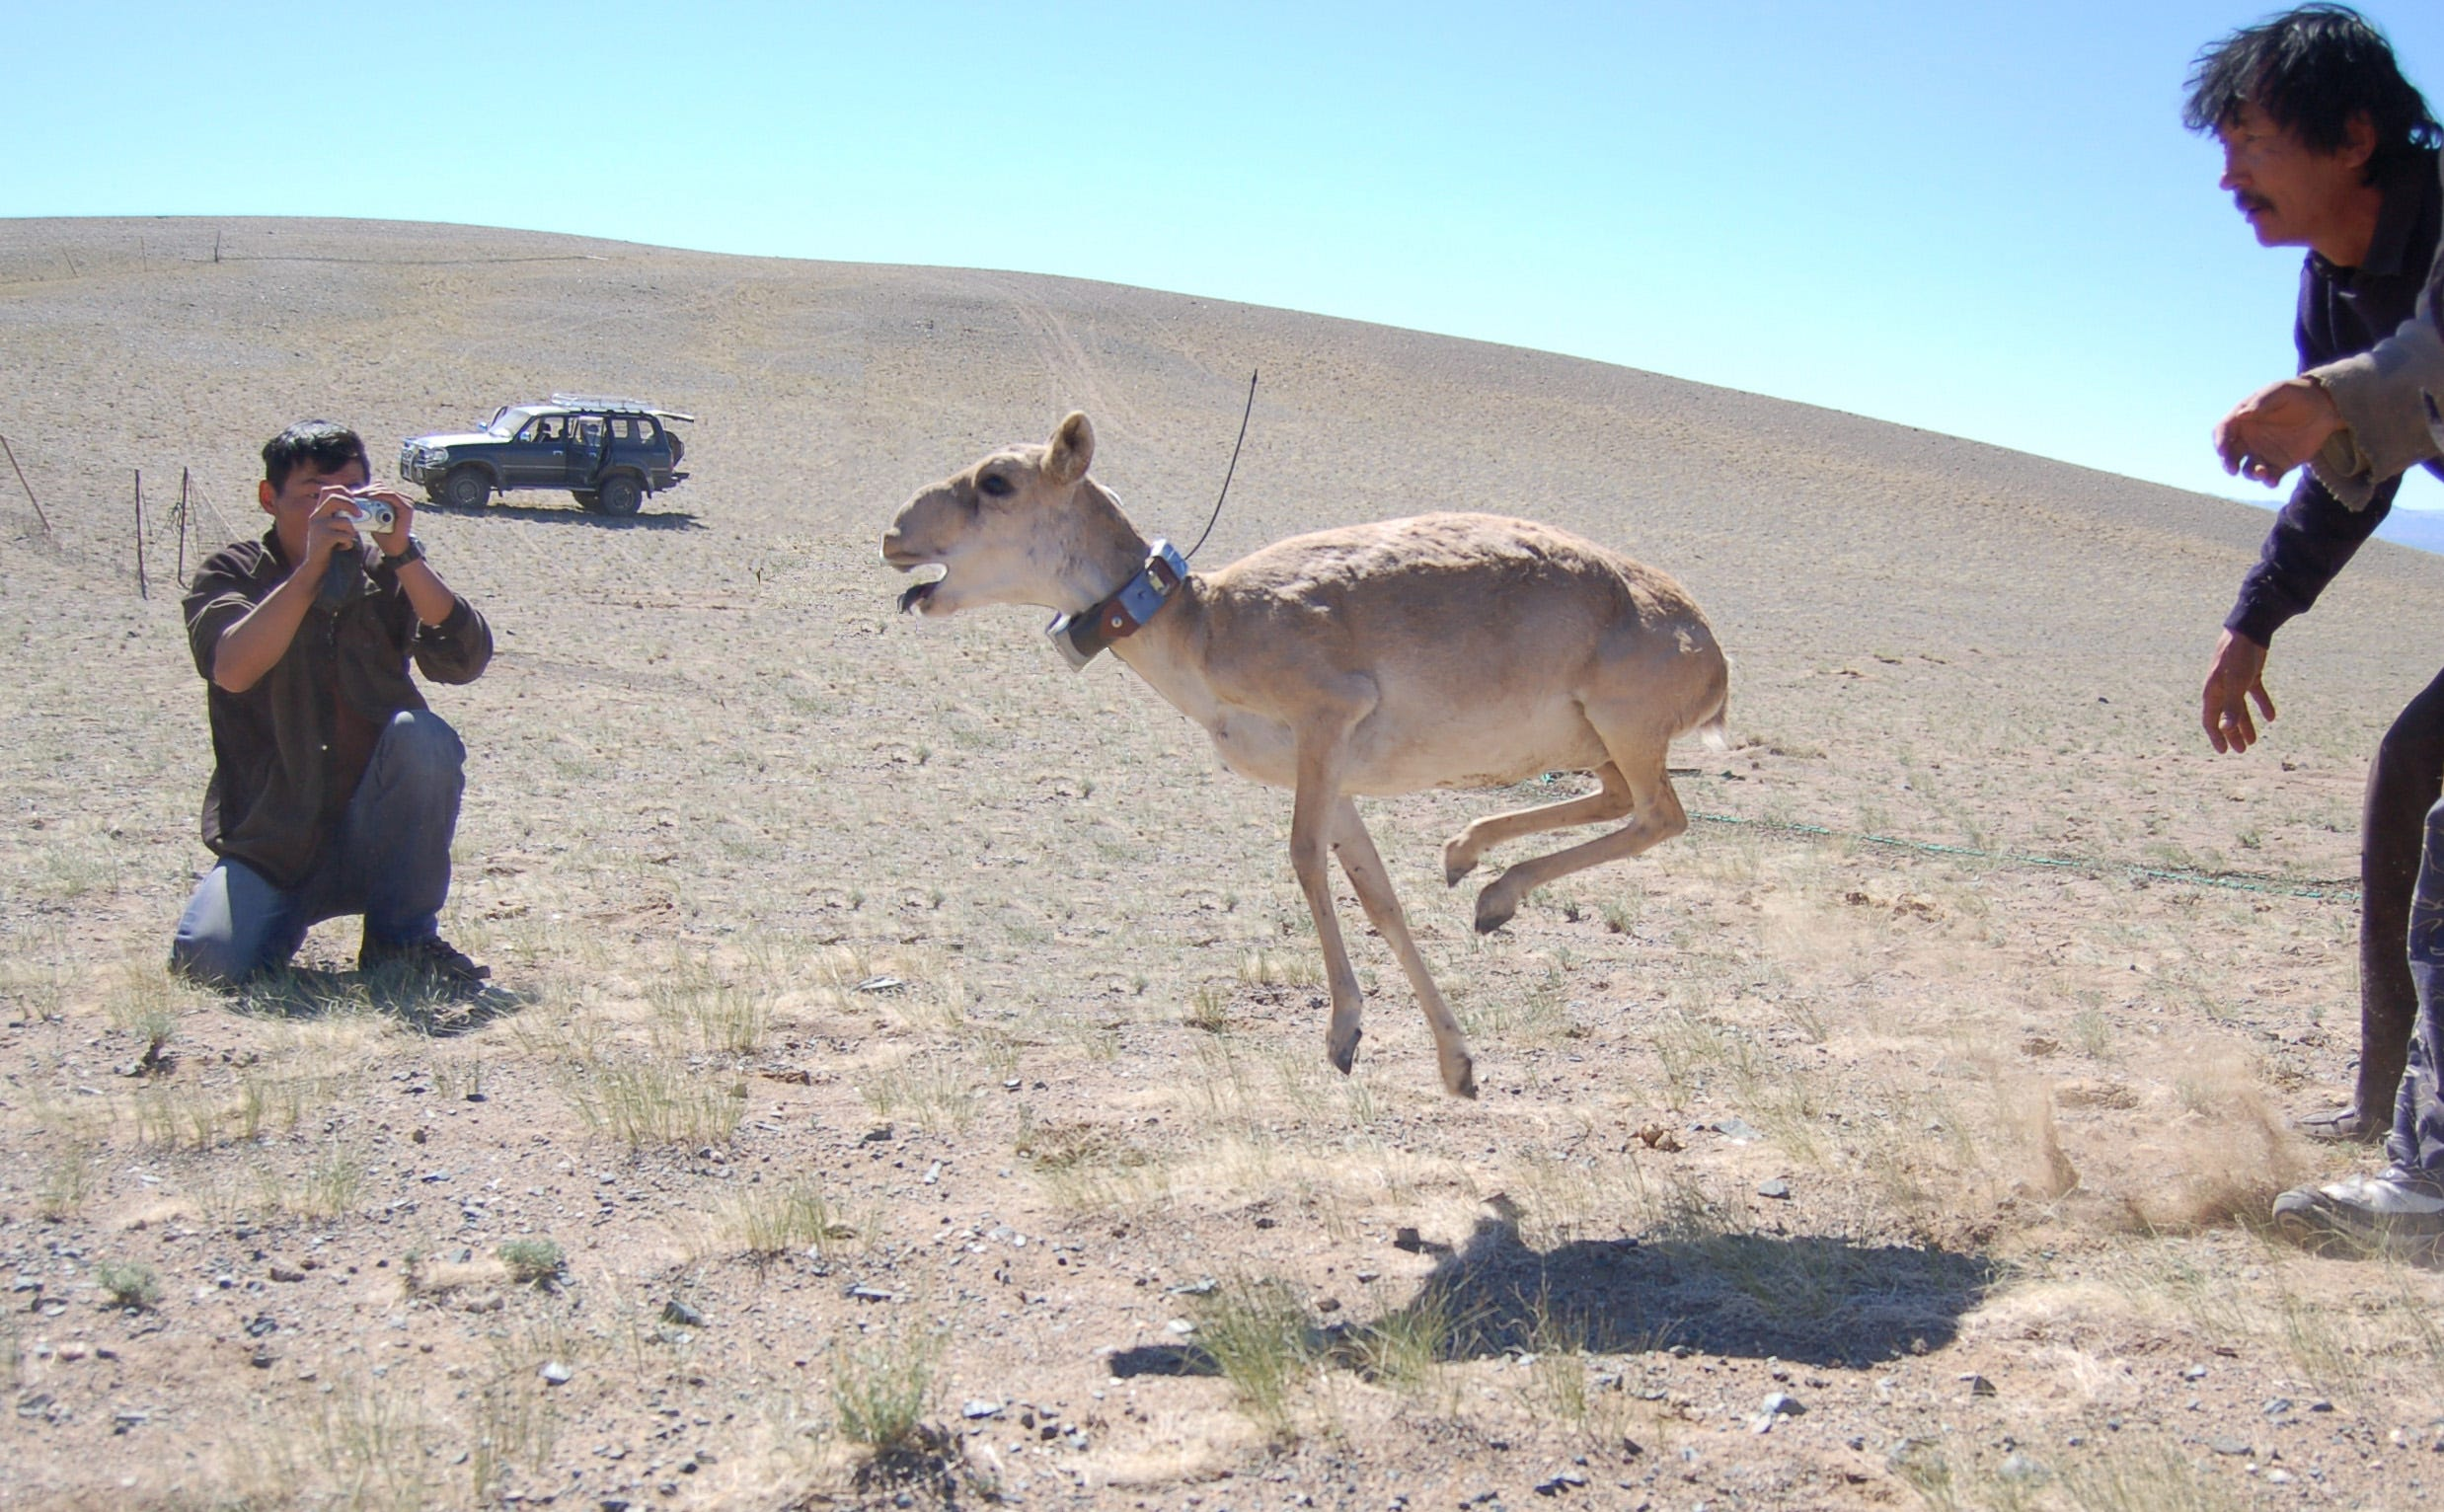 In 2015, 200,000 endangered antelope dropped dead in Kazakhstan. This is what killed them